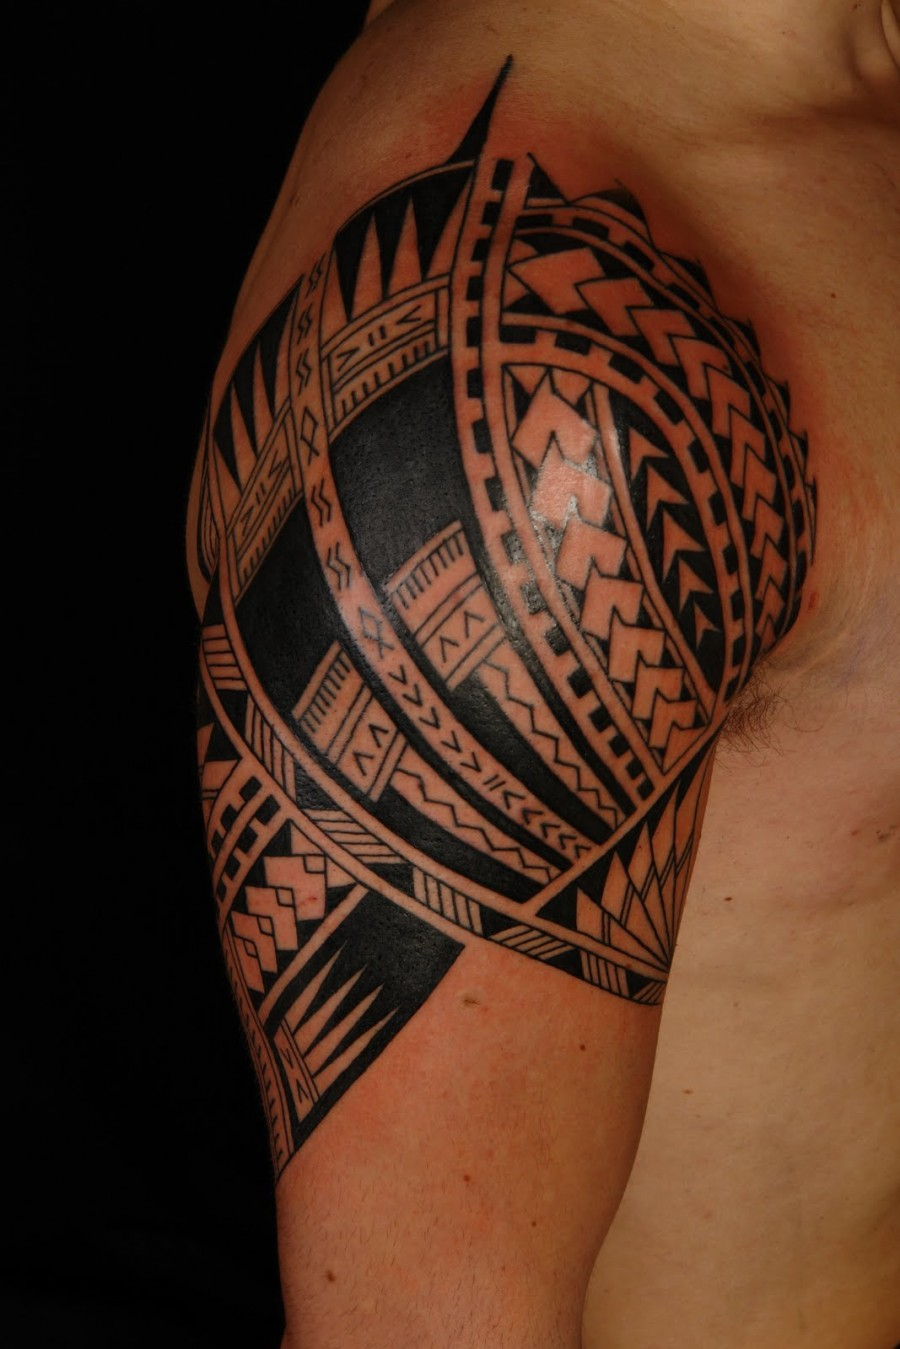 Awesome Samoan Sleeve Tatto On Upper Arm Tattoomagz